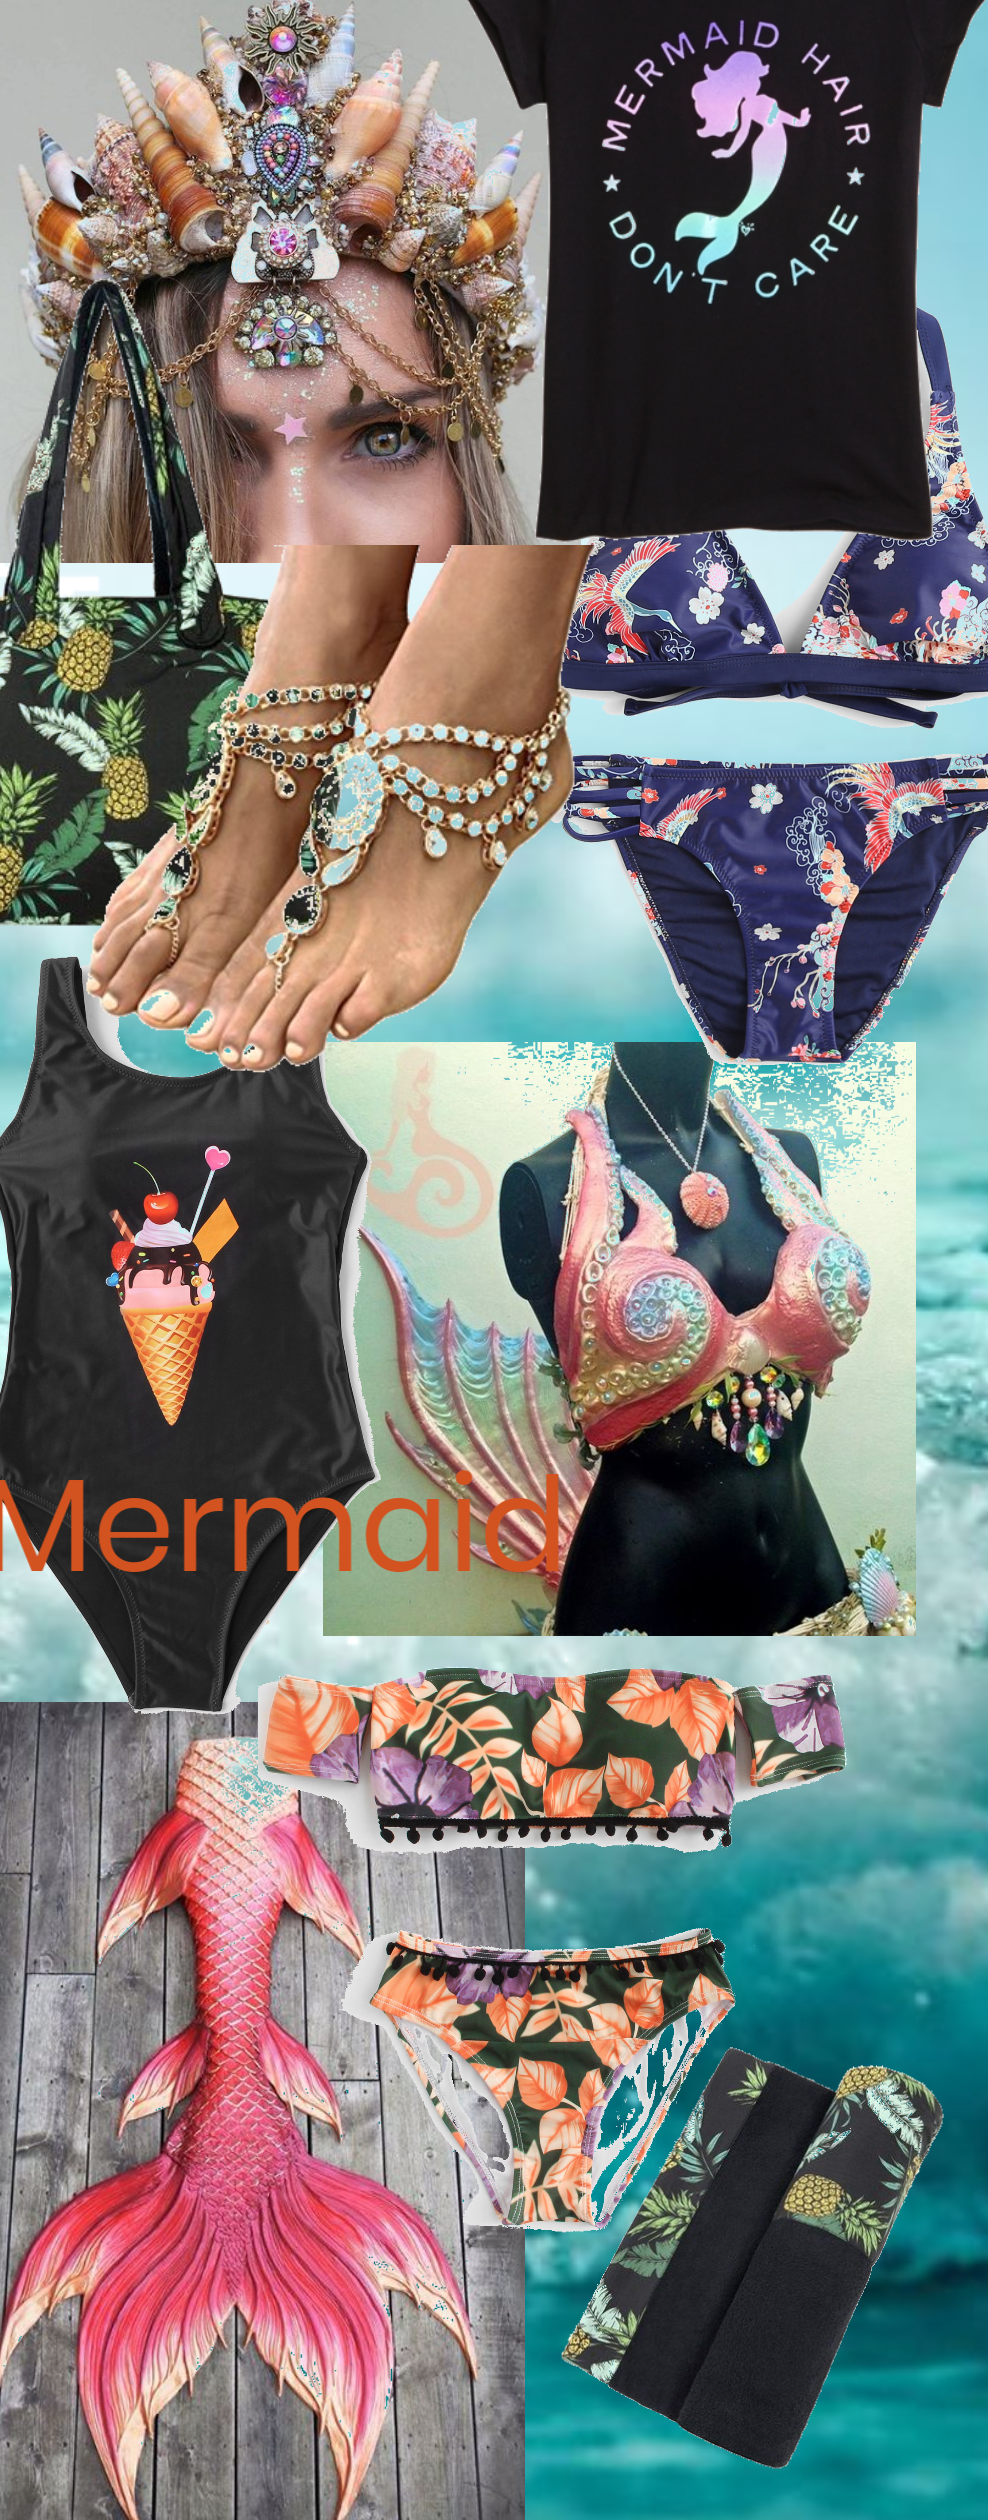 # Swimsuit Be A Mermaid